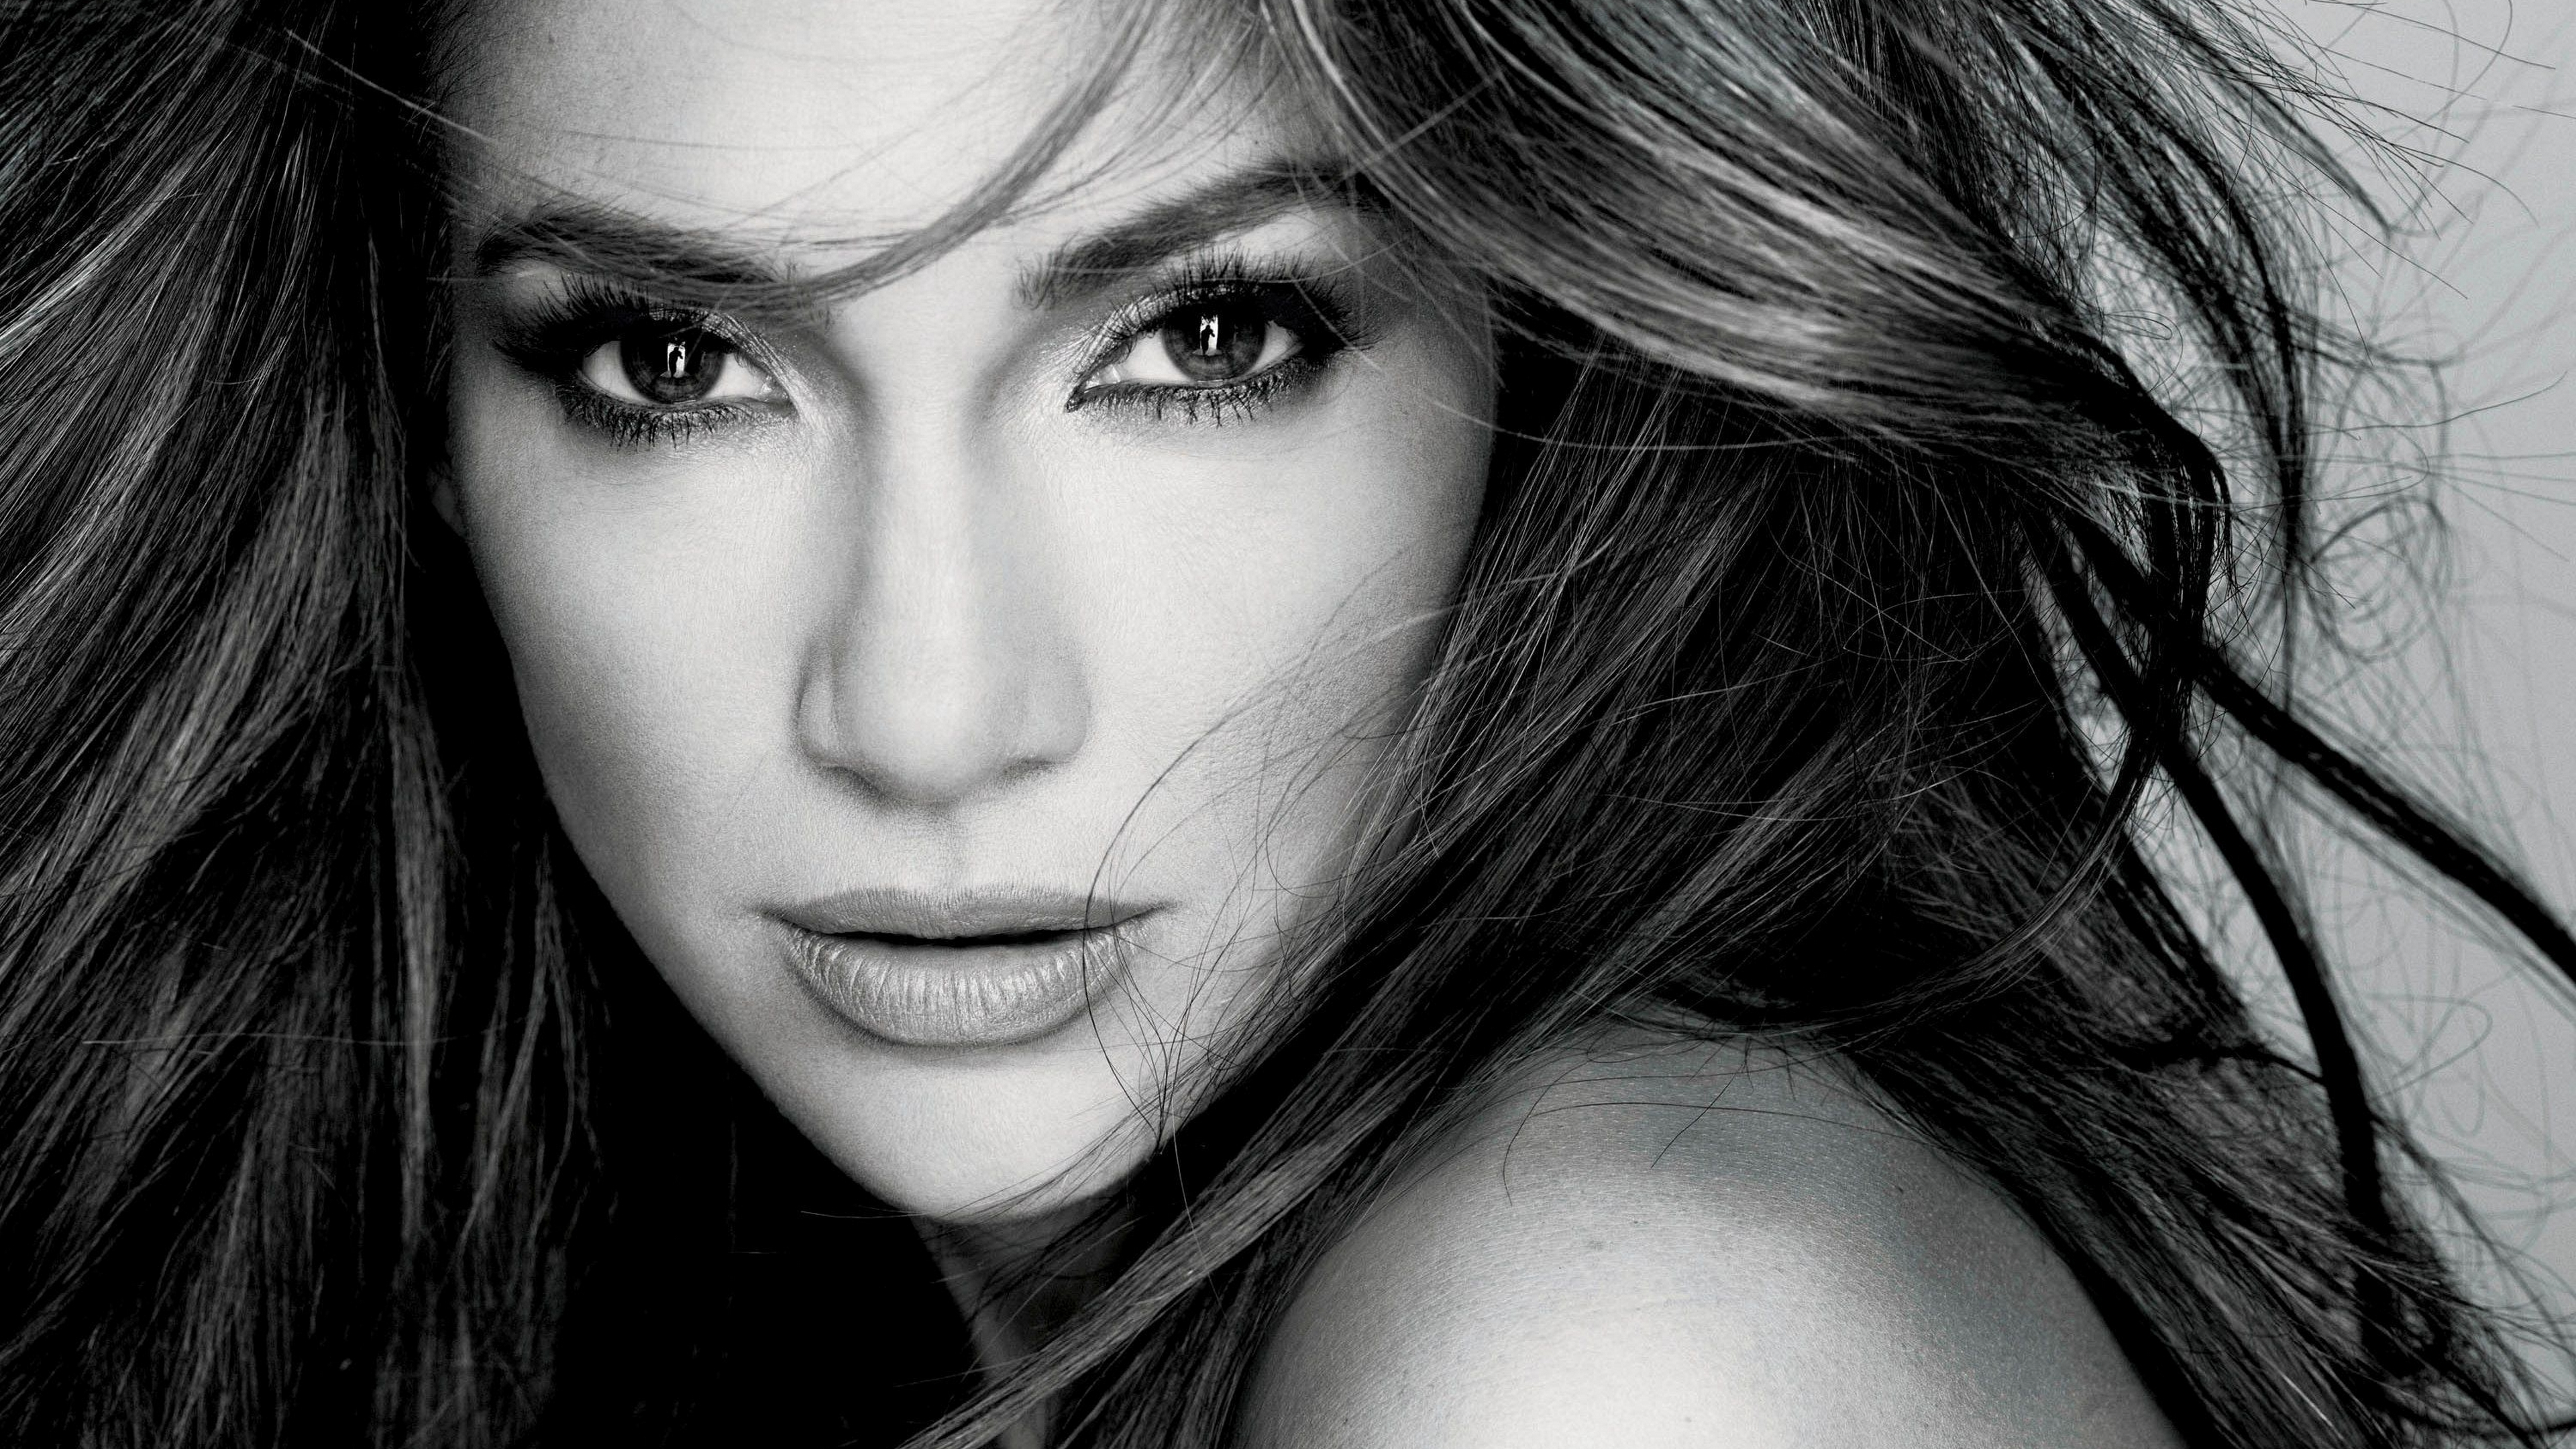 jennifer lopez 4k wallpaper background